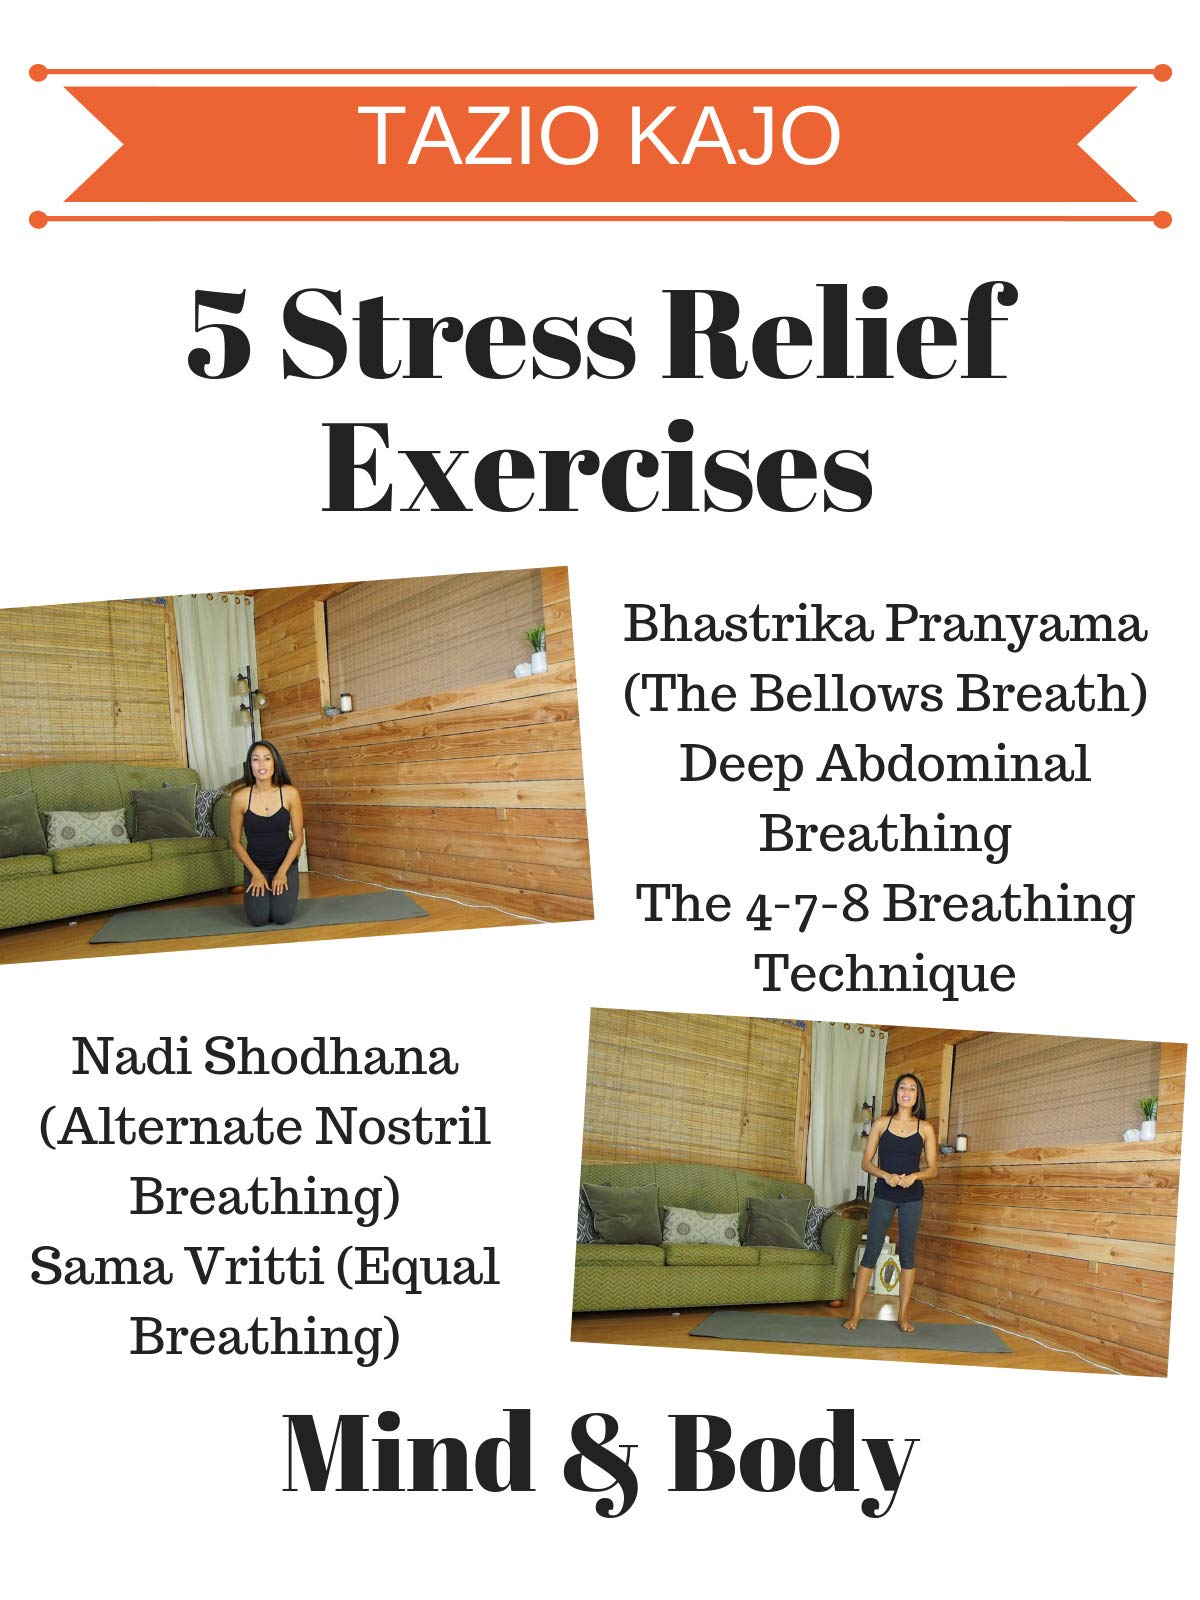 5 Stress Relief Exercises